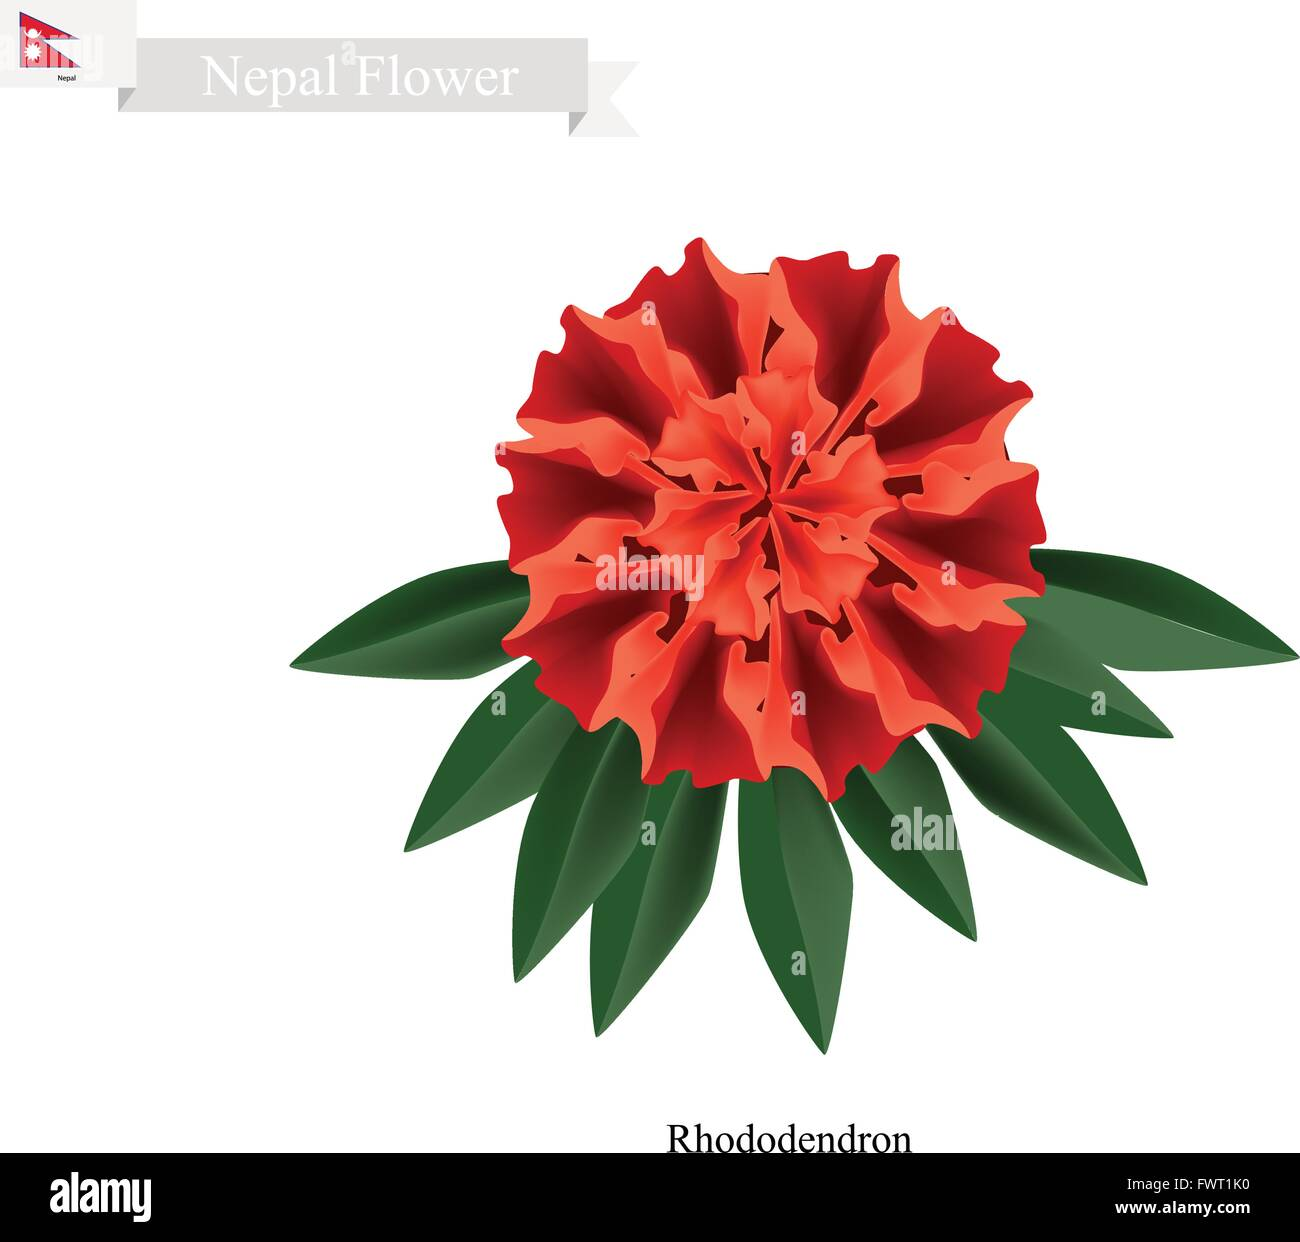 Nepal Flower, Illustration of Red Rhododendron Flowers. The National Flower of Nepal. - Stock Vector